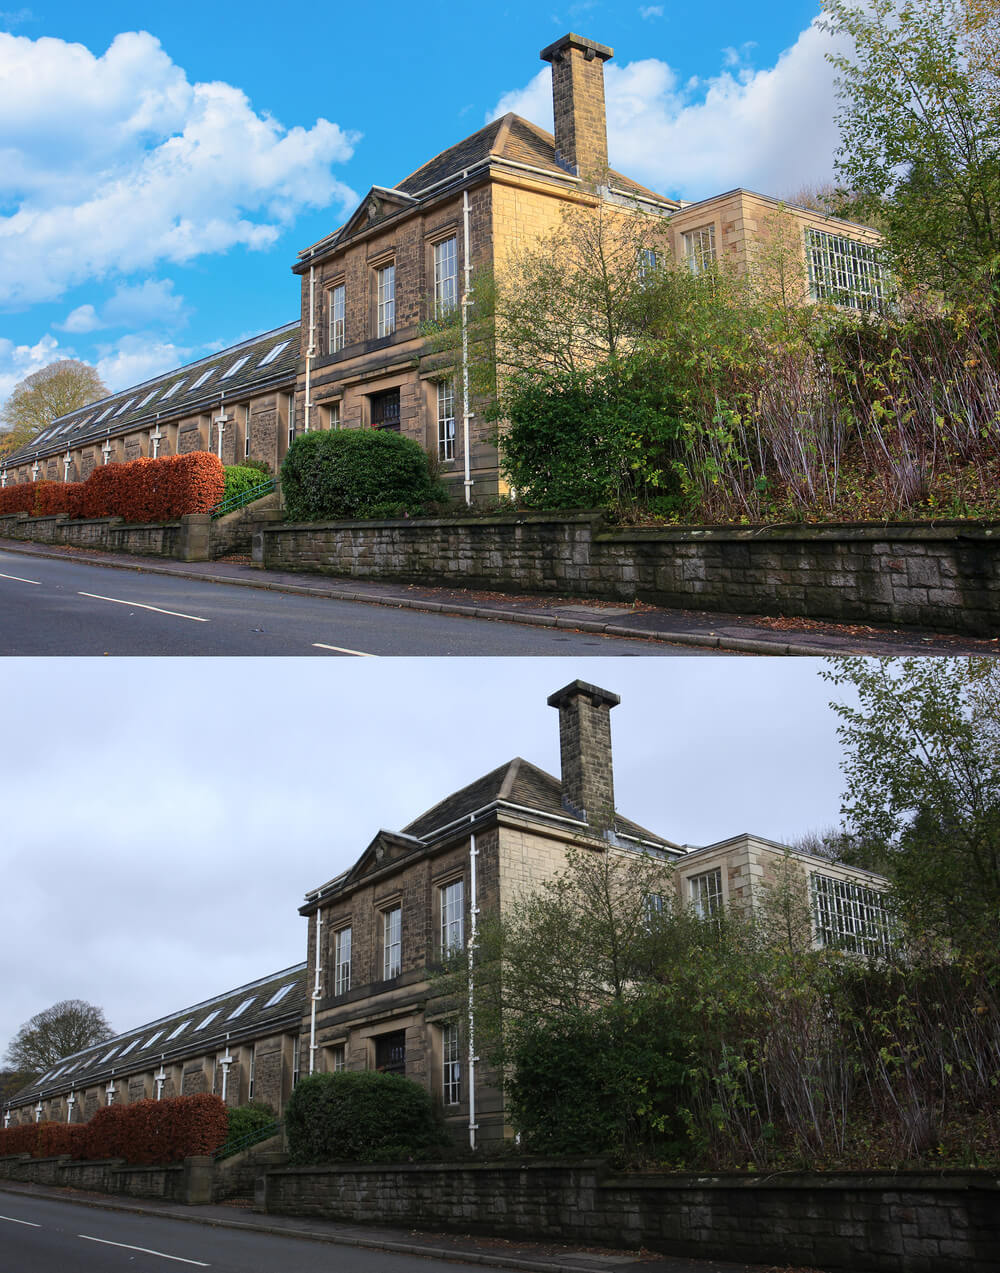 a traditional building converted to apartments near ladybower in the peak district